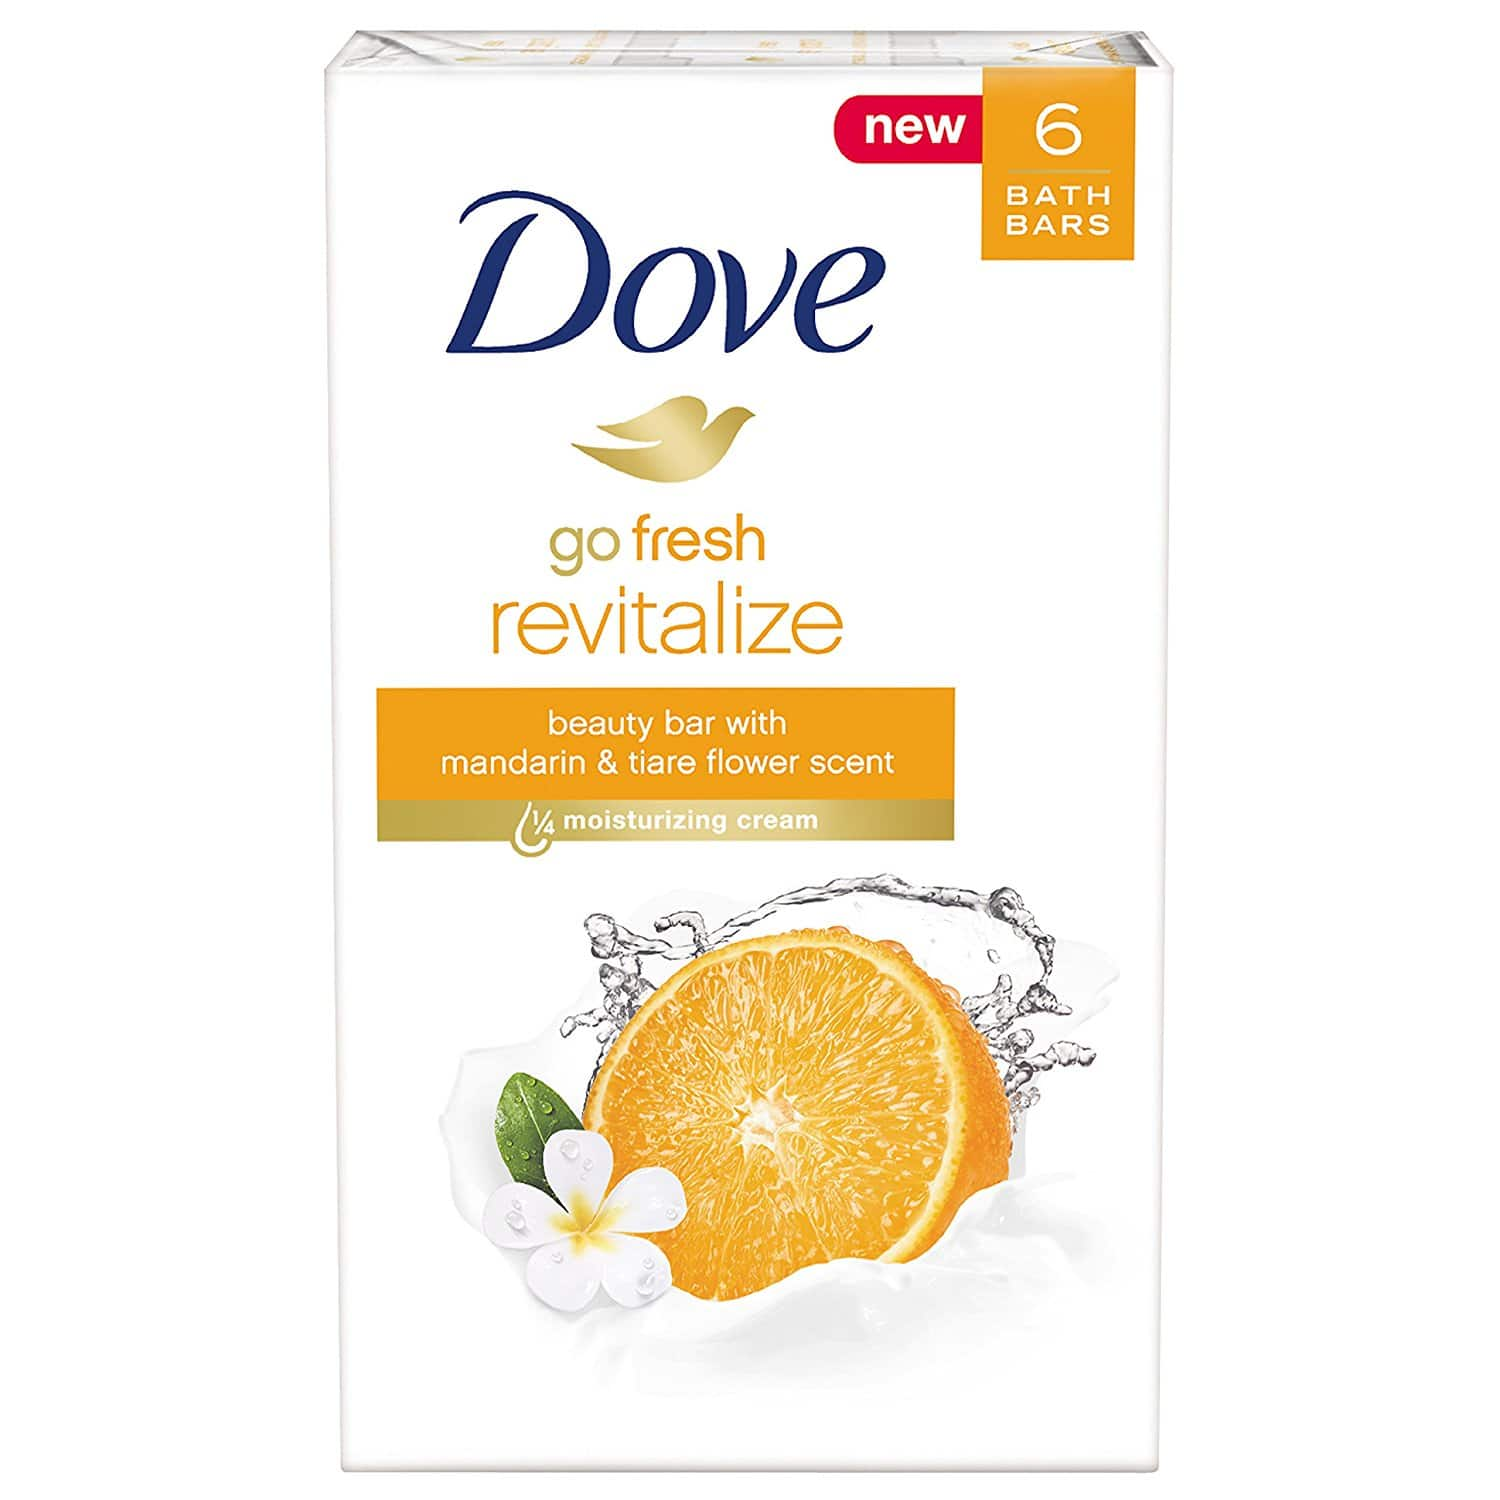 Amazon: Dove Beauty Bar - Mandarin and Tiare Flower - 6 Count - $2.88 + FS With Prime Pantry Order $40+